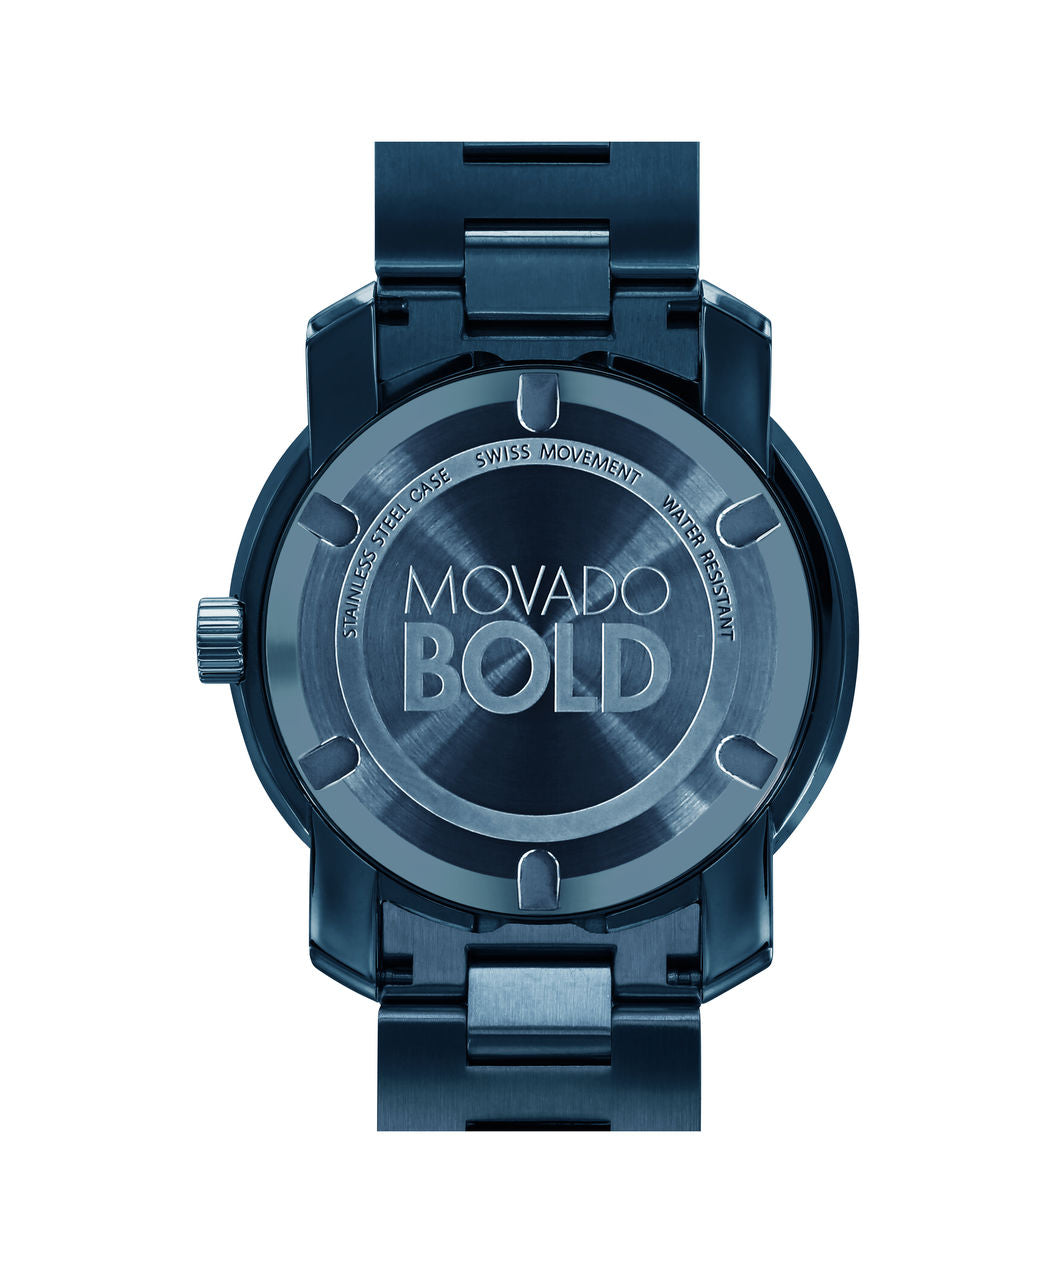 Movado Bold - Large Ink Stainless Steel